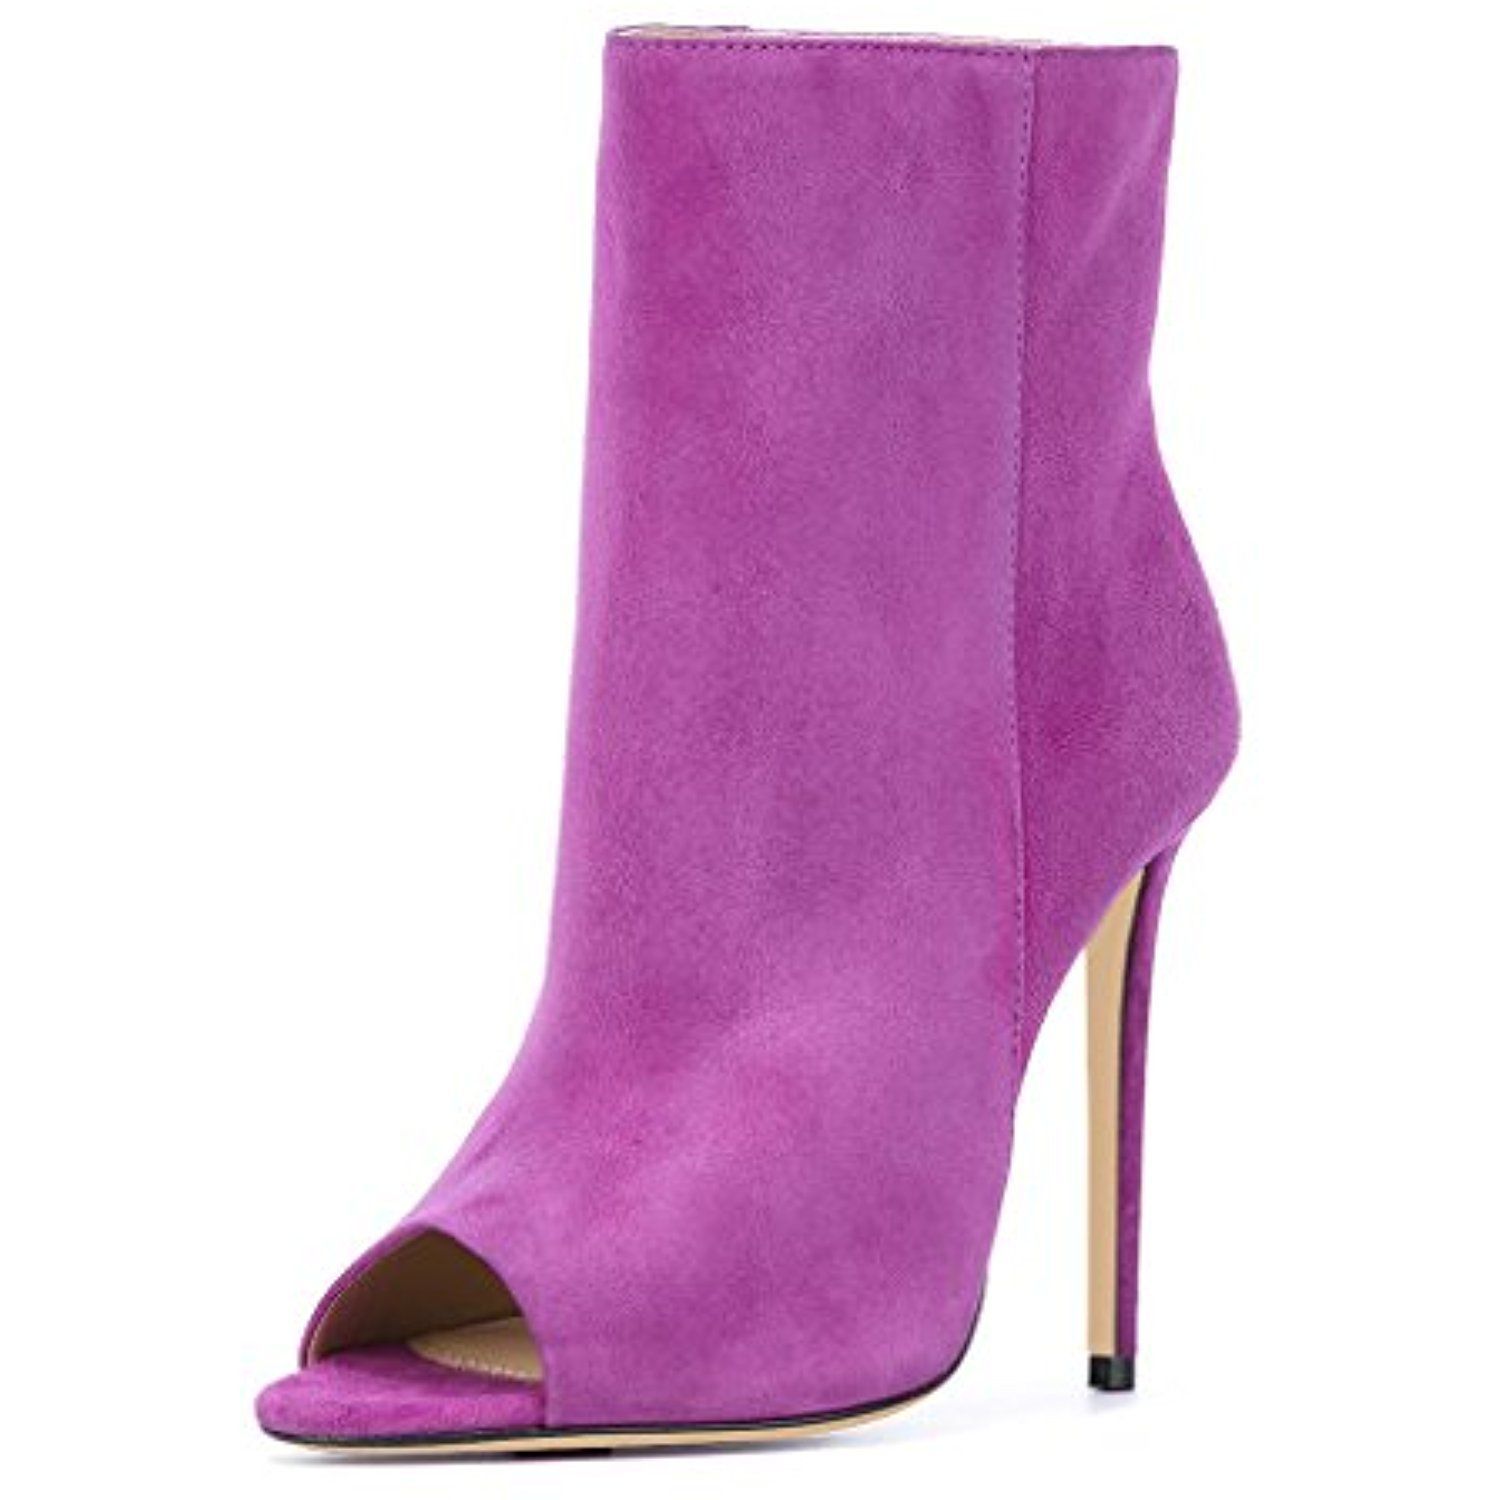 Elegant High Heel Stiletto Ankle Boots Faux Suede Peep Toe Pumps Booties For Women